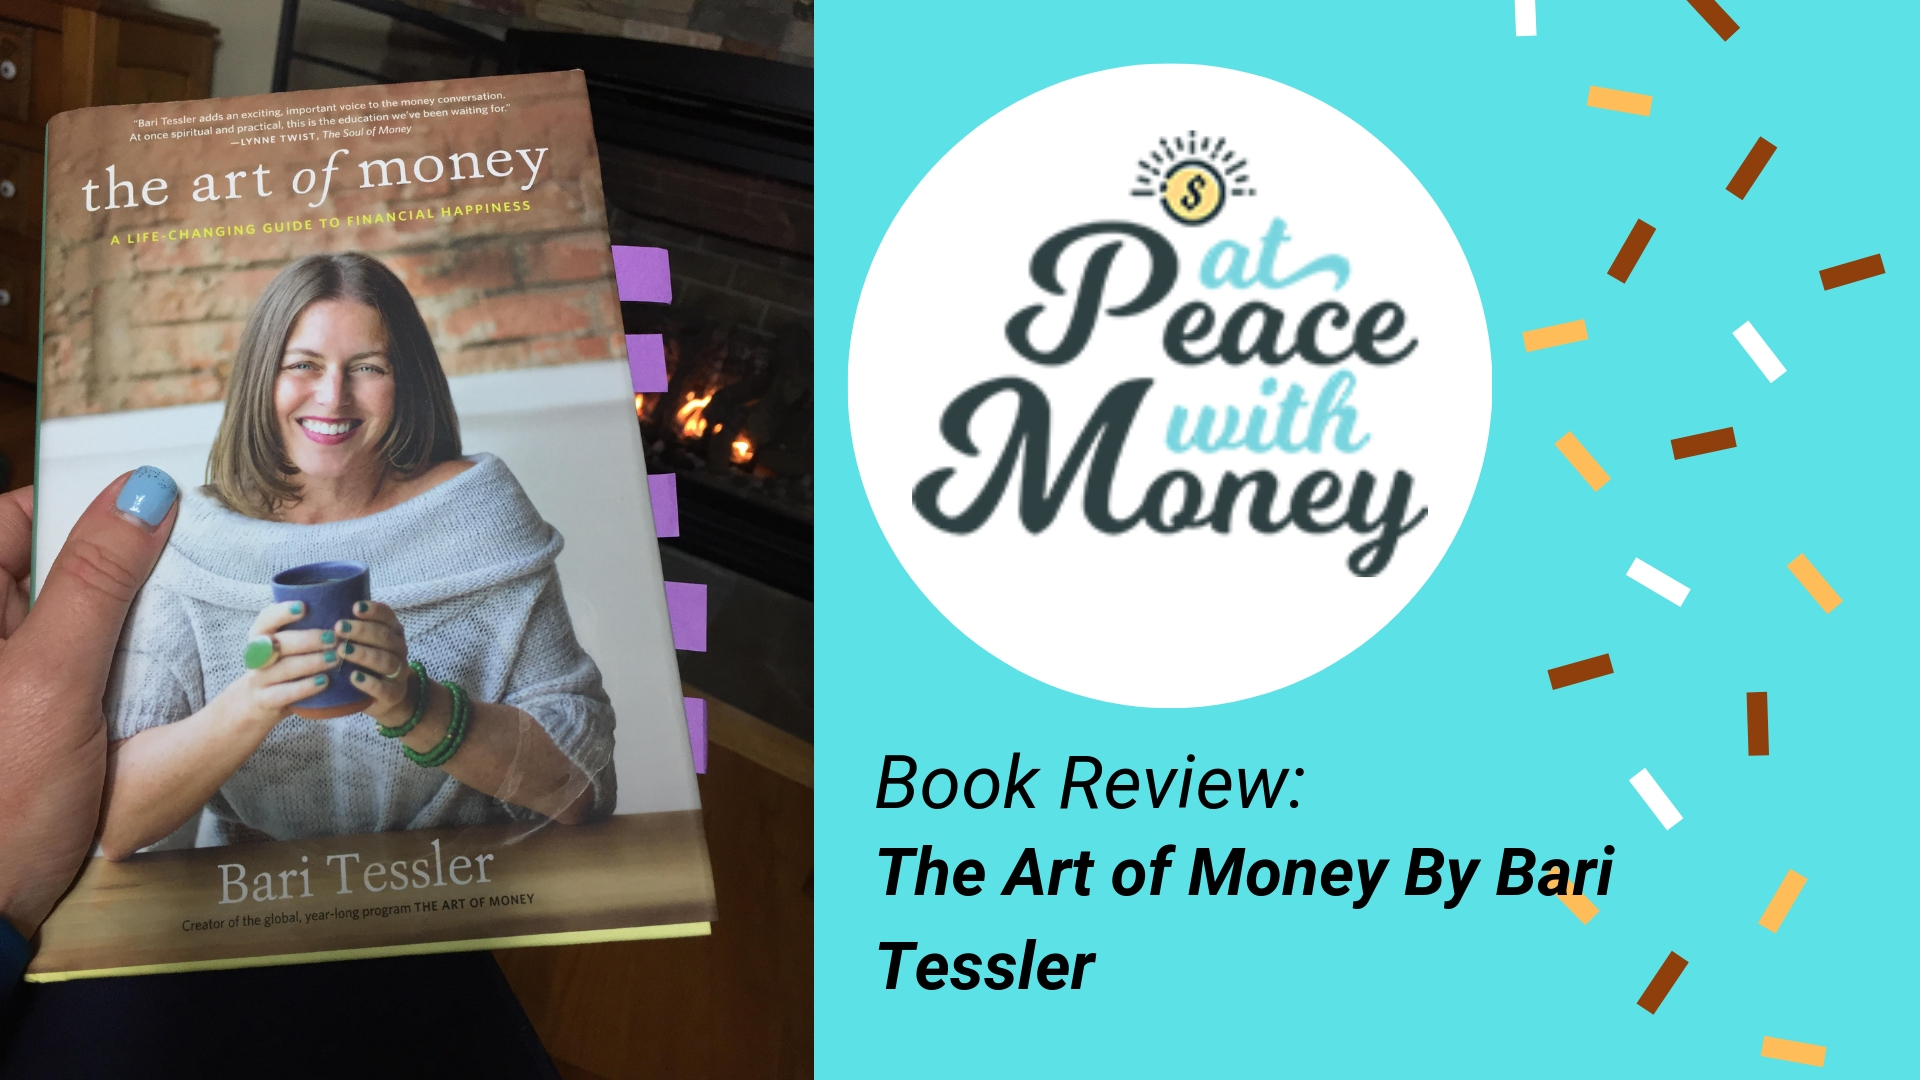 Book Review: The Art of Money By Bari Tessler